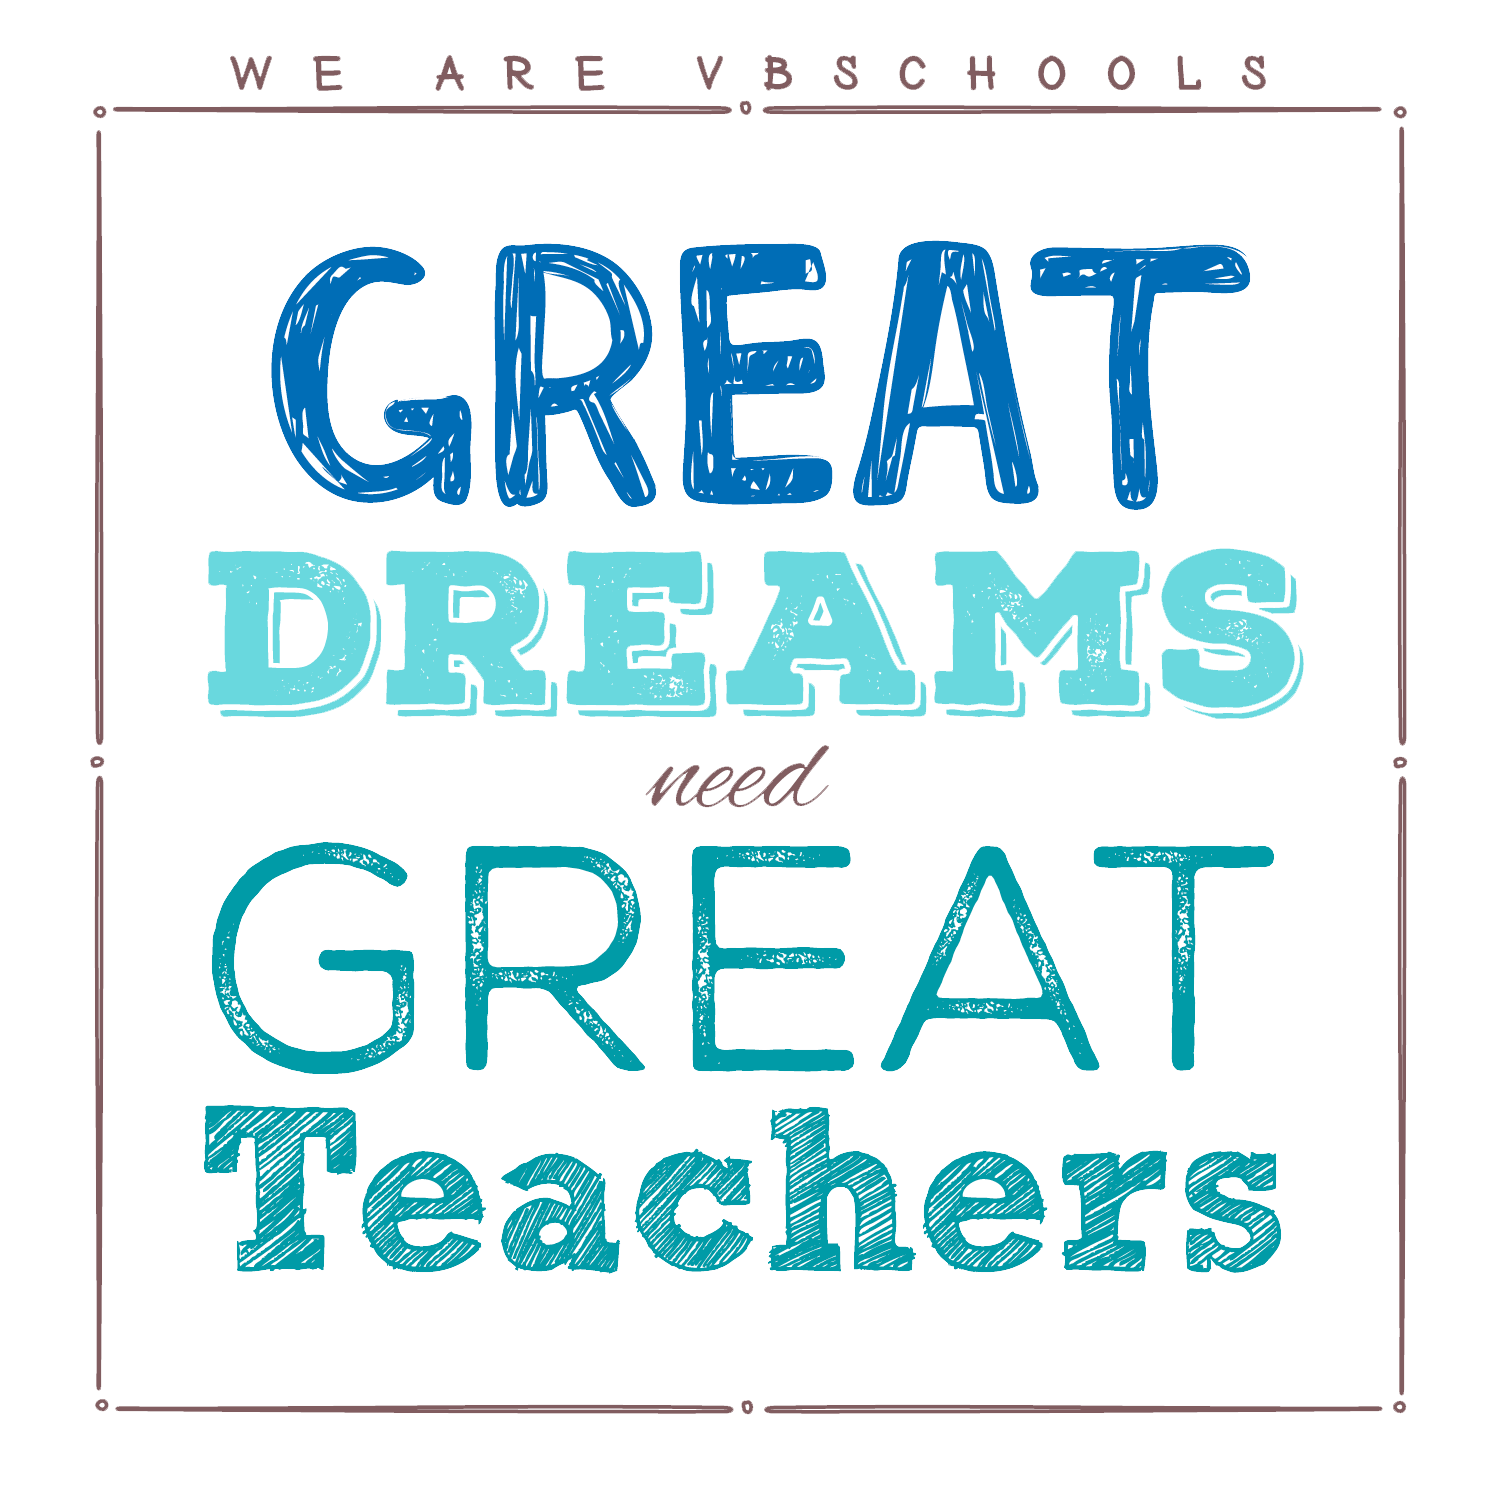 We Are Vbschools Great Dreams Need Great Teachers